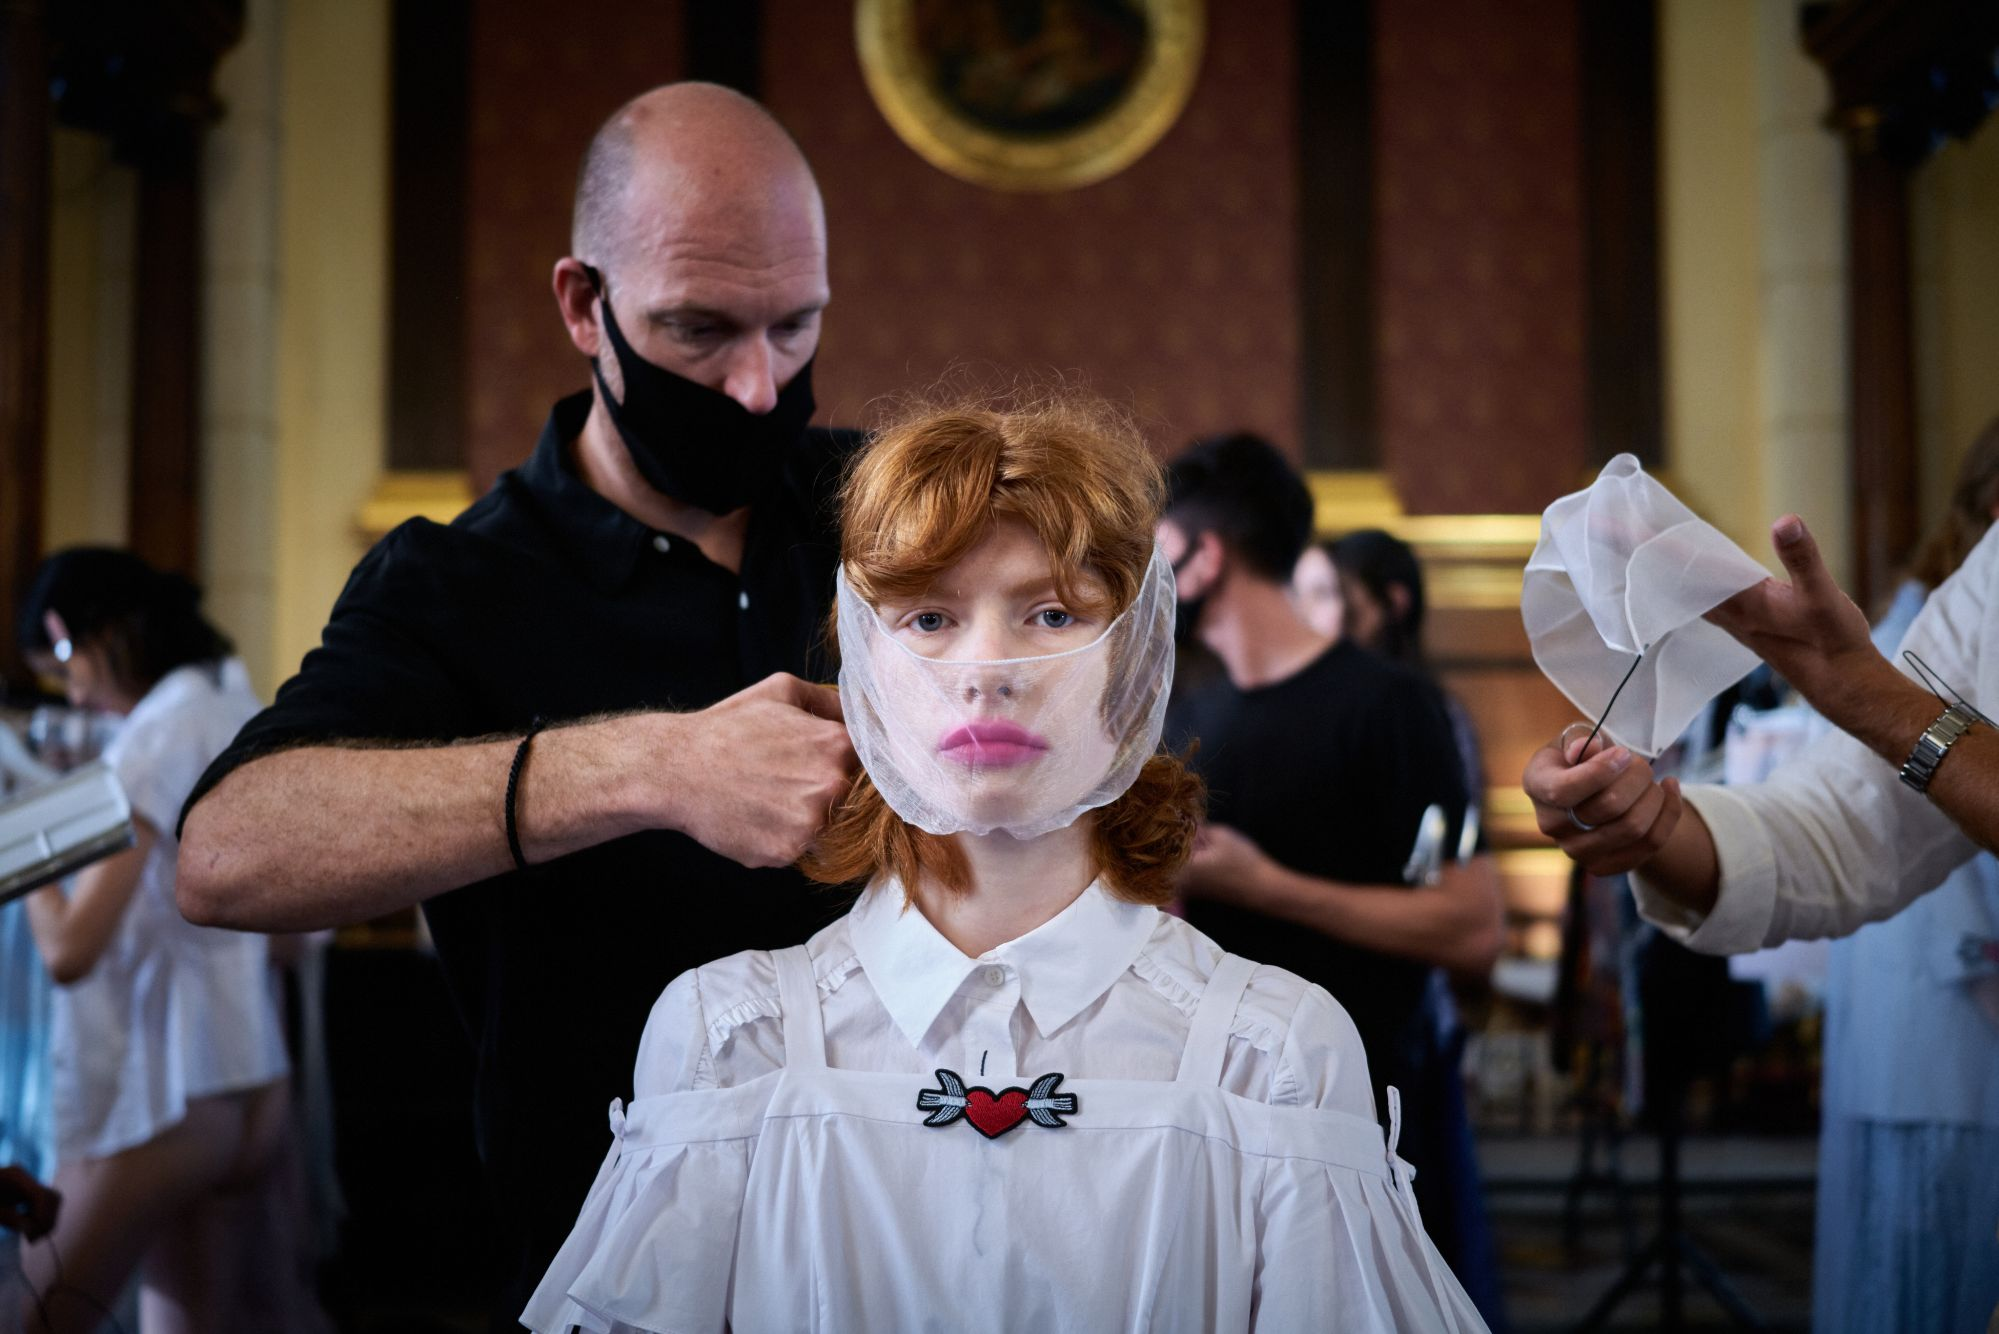 A model backstage ahead of the Bora Aksu show during LFW September 2020 at The Waldorf London (photo: Gareth Cattermole/BFC/Getty Images)